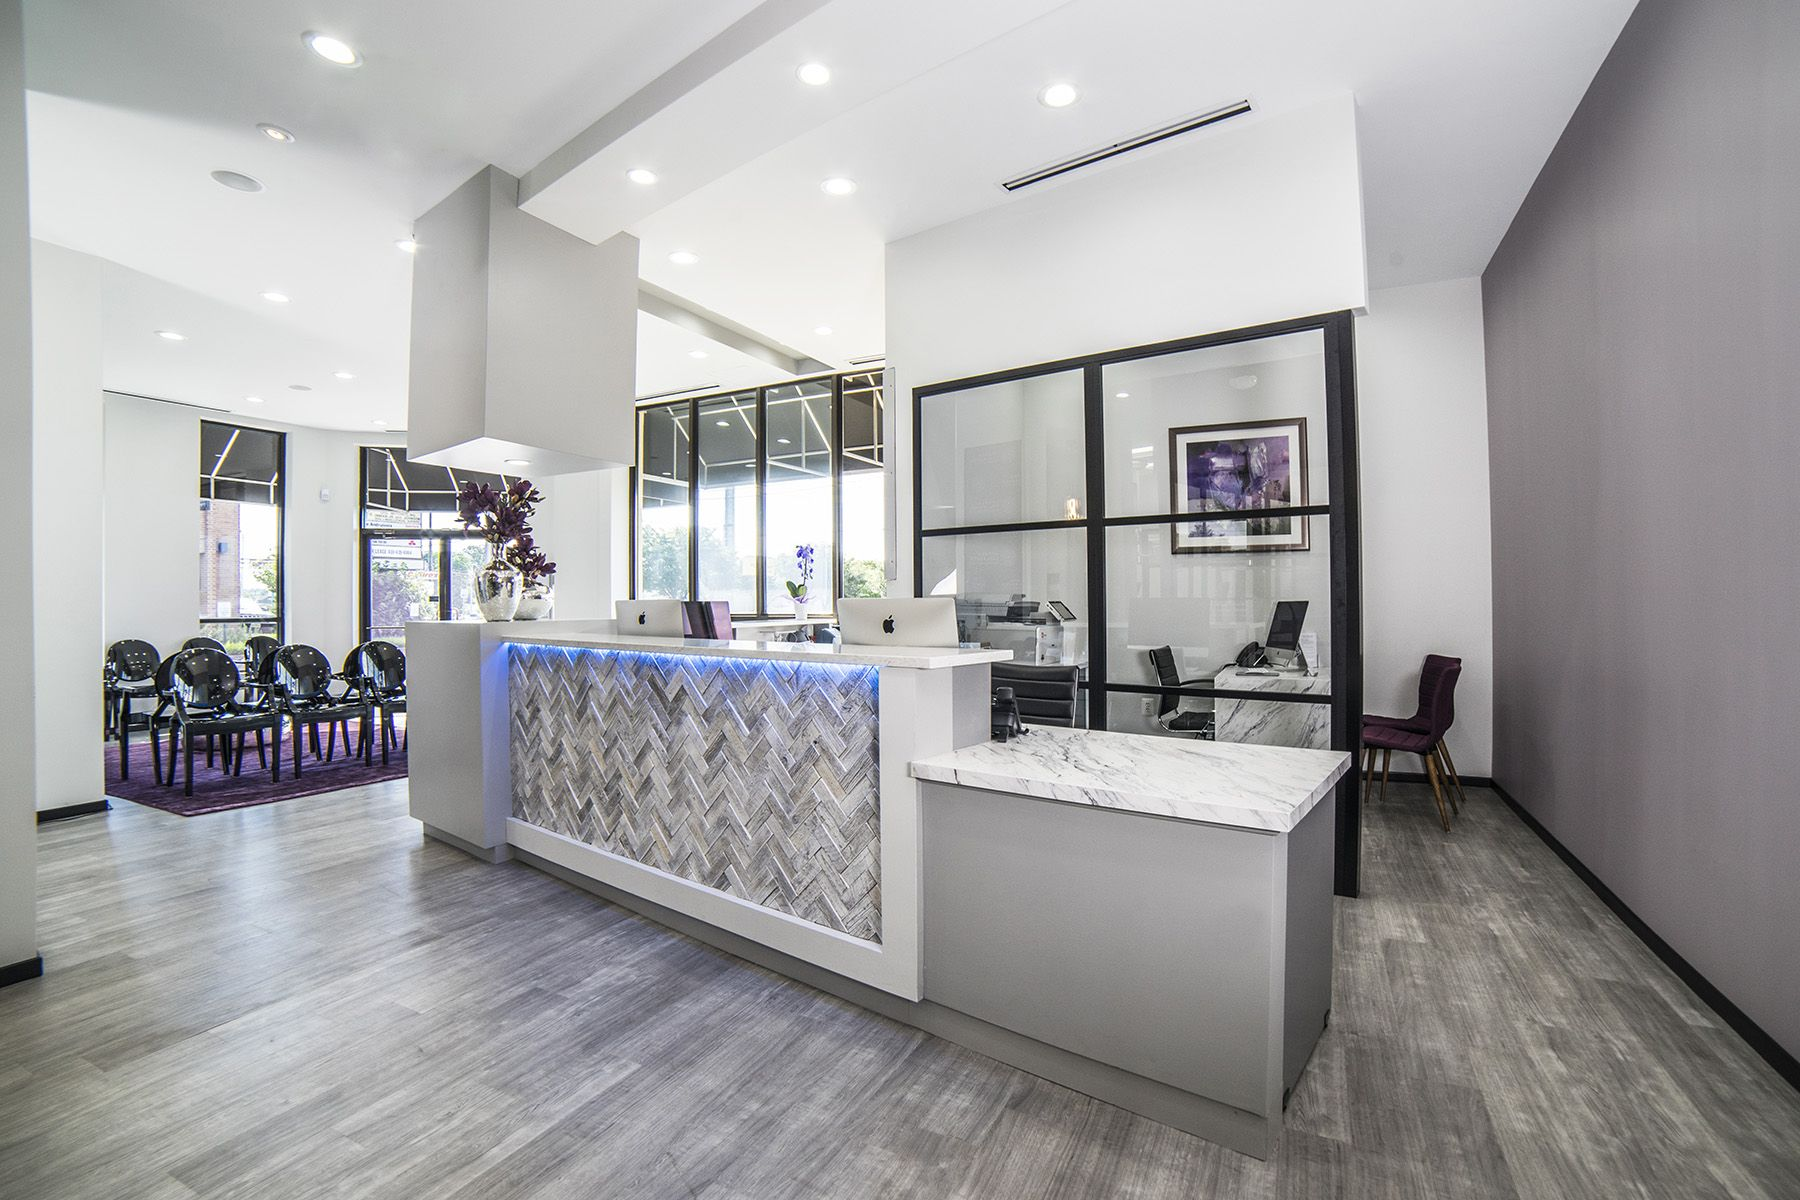 Amanda Gallagher Orthodontics architecture design and construction